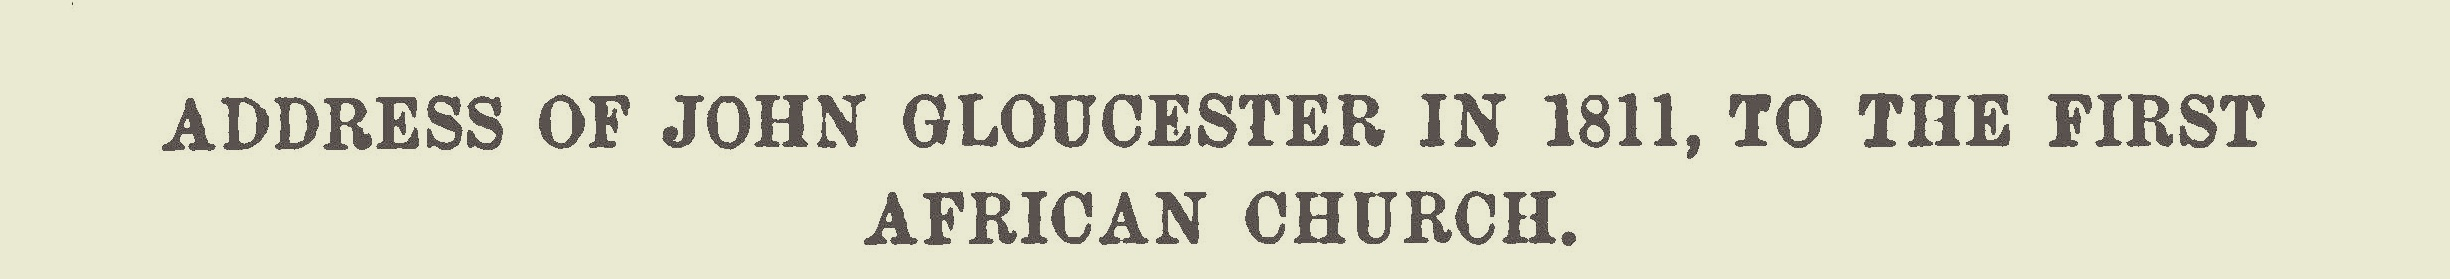 Gloucester, John, Sr., Address to the First African Church Title Page.jpg